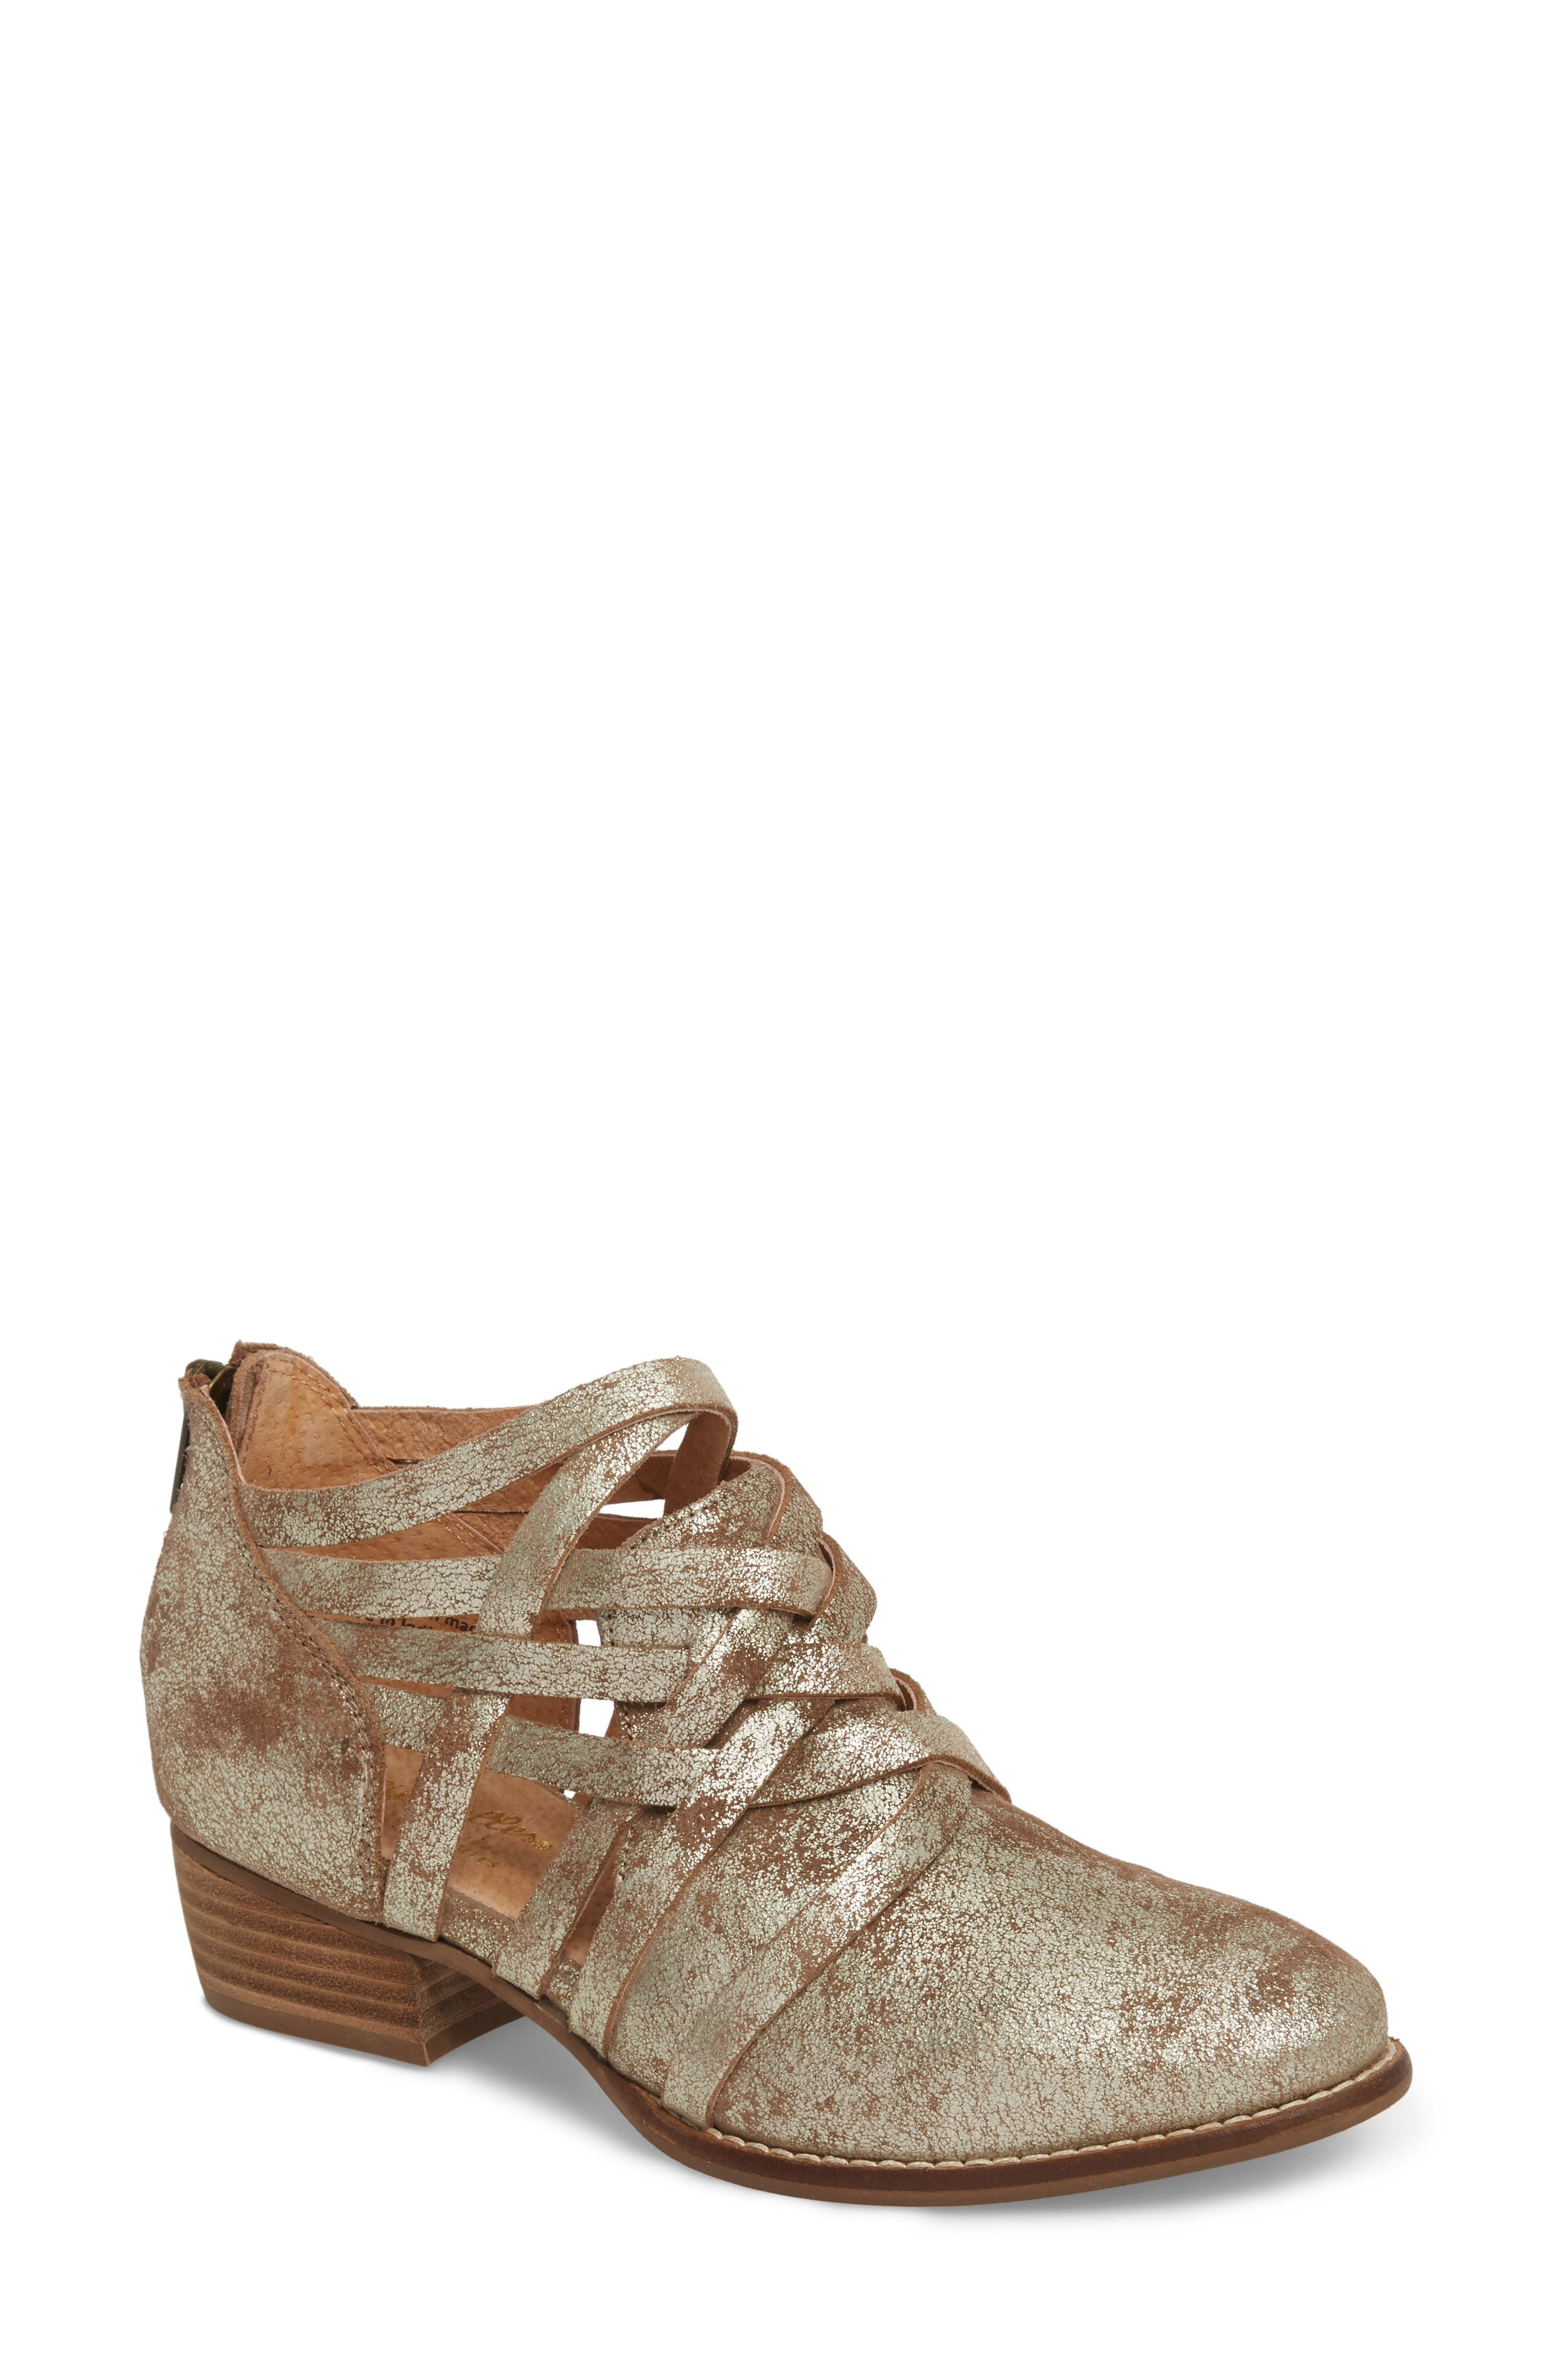 So Blue Cutout Bootie,                             Main thumbnail 1, color,                             GOLD DISTRESSED LEATHER